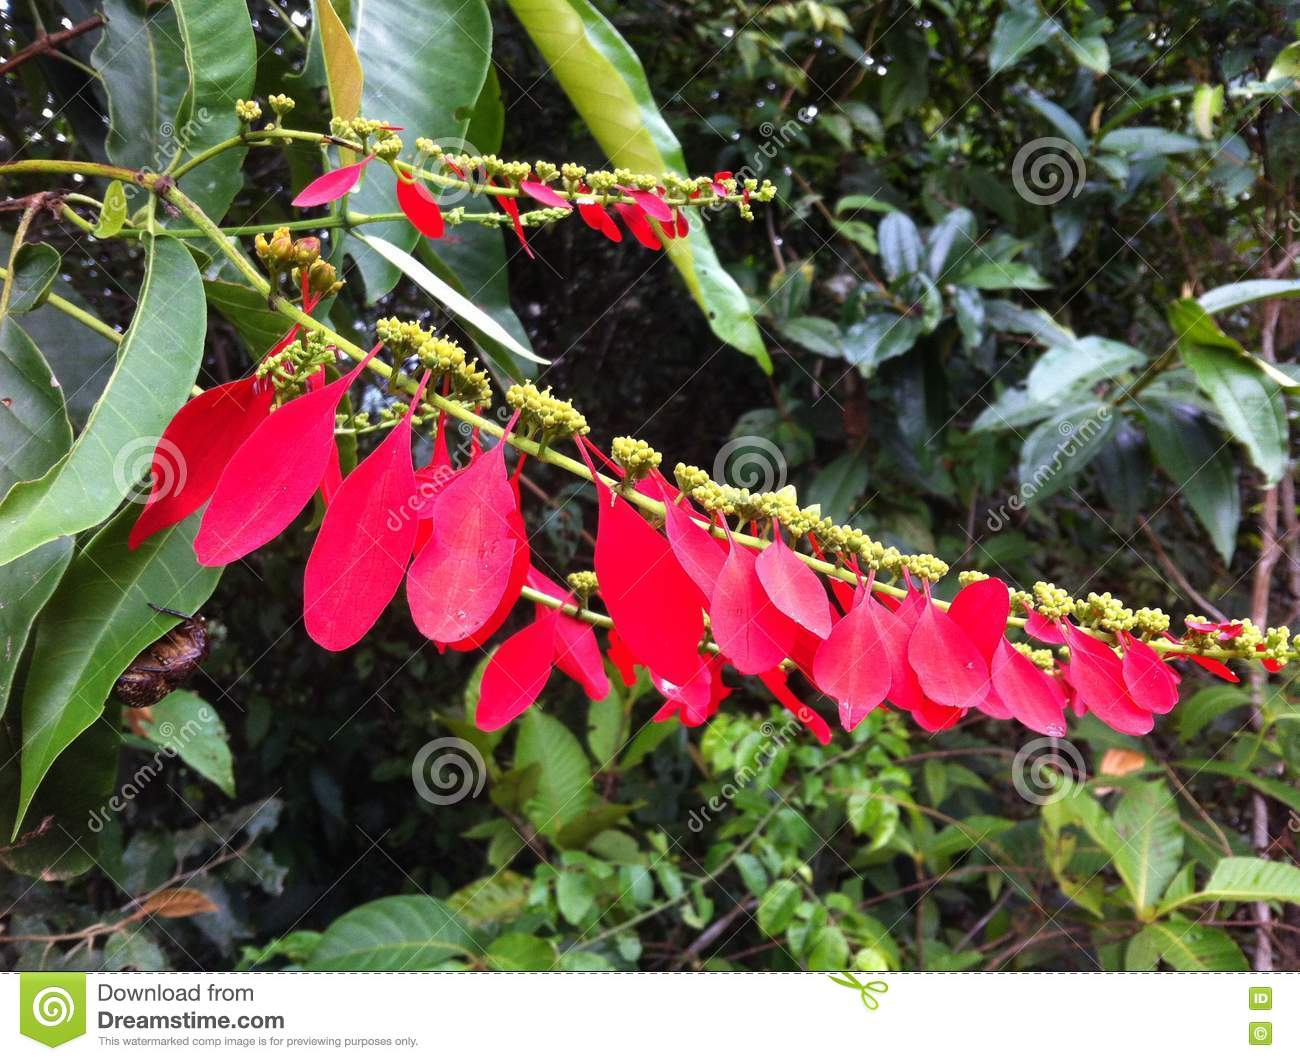 flower in the rainforest of peru stock image image of shiny